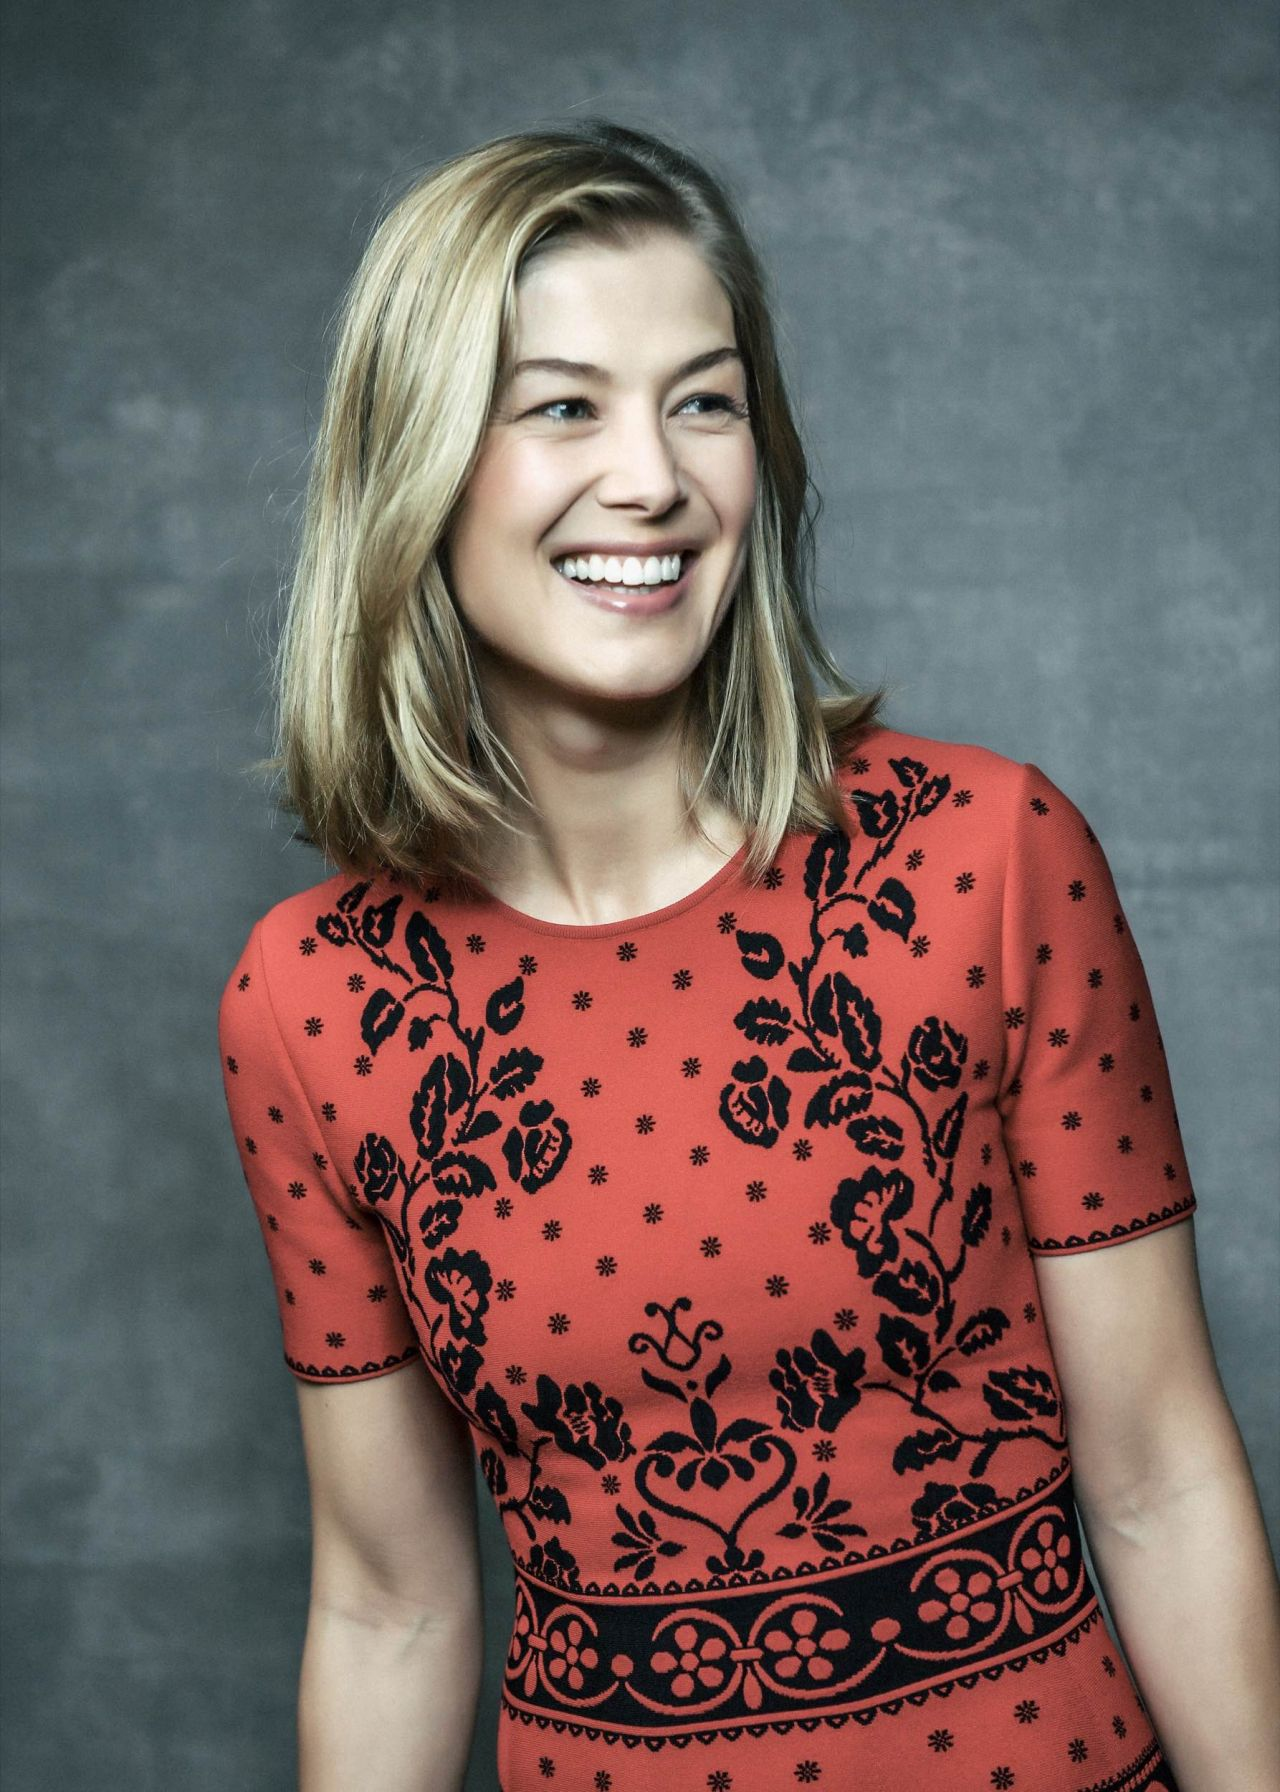 Rosamund Pike - London Film Festival. November 2016.